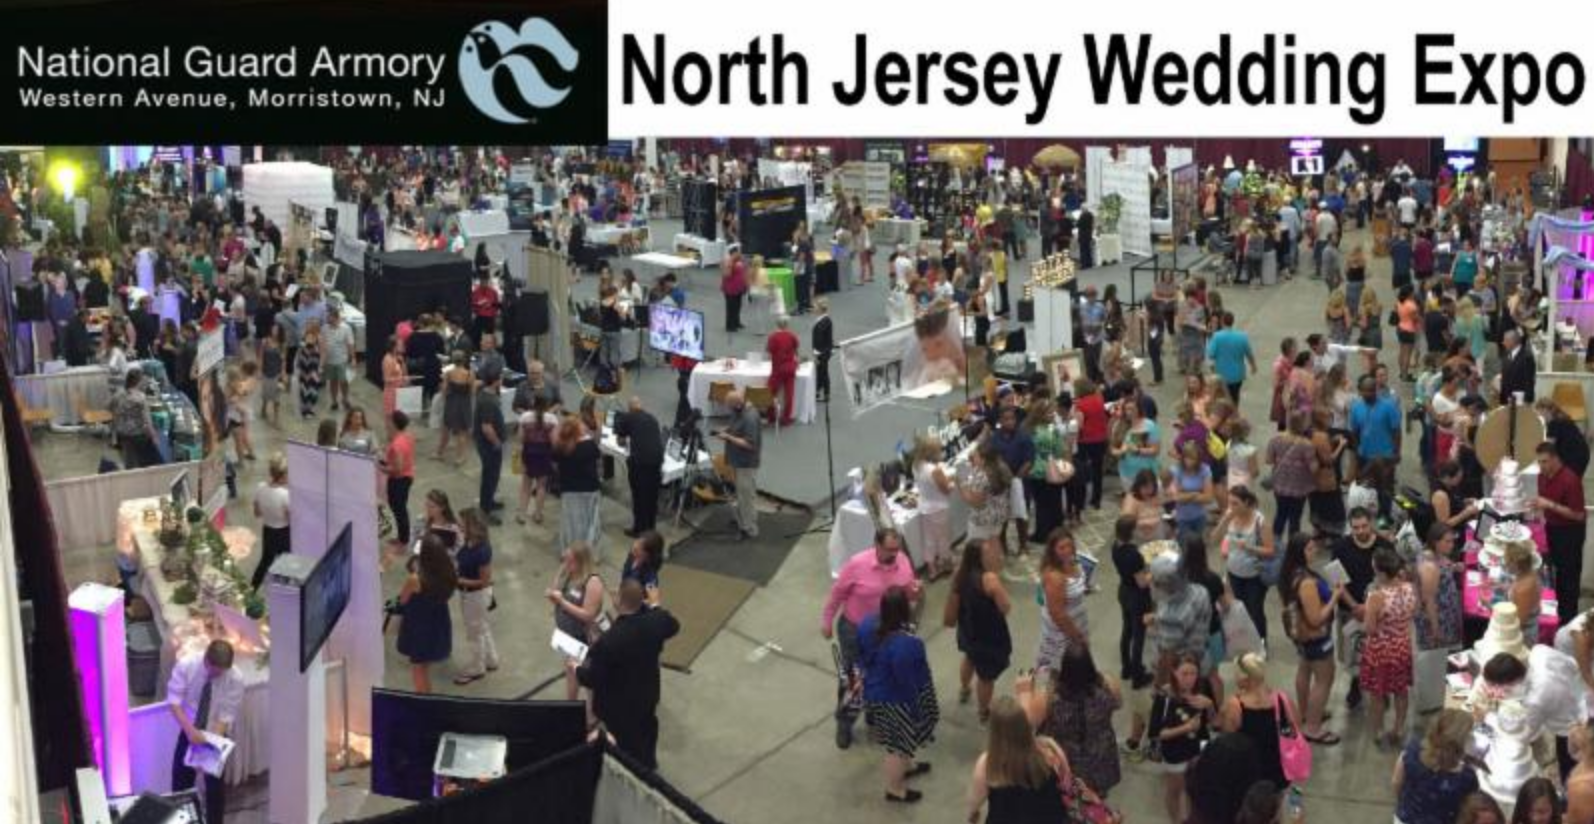 North Jersey Wedding Expo at The Morristown Armory